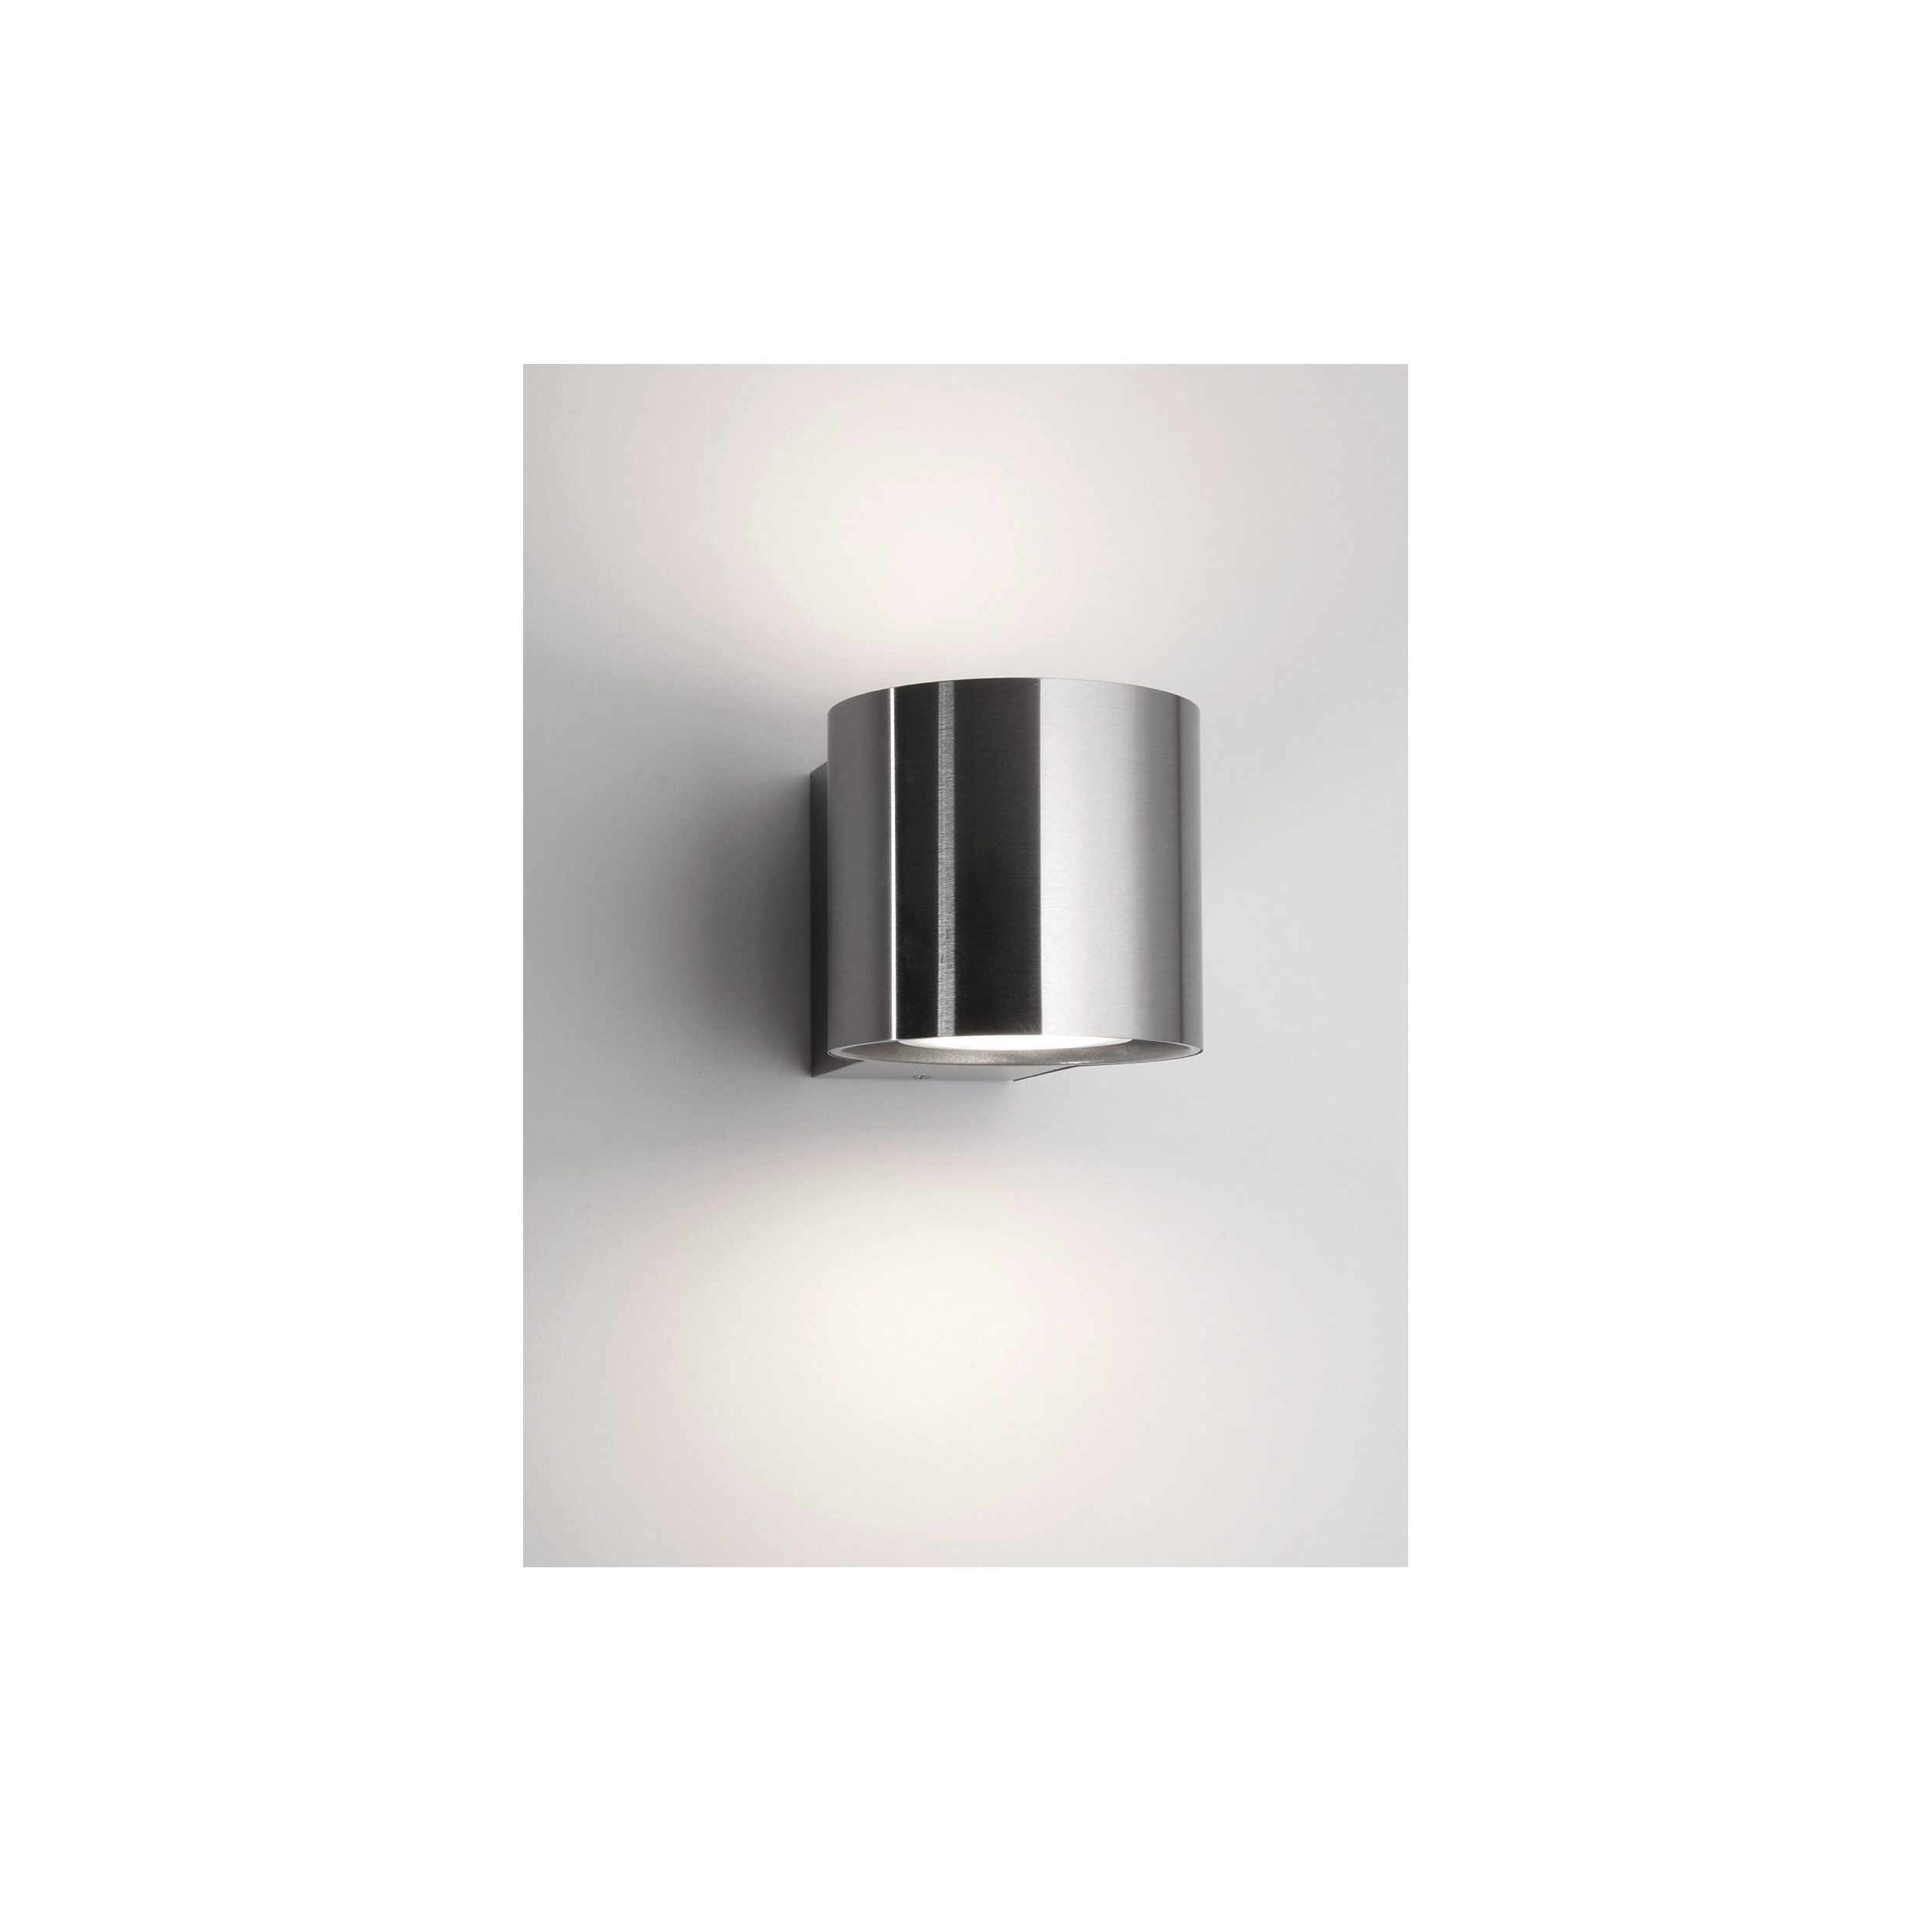 Philips ledino applique murale ext rieur moderne lampe for Philips ledino applique murale exterieur